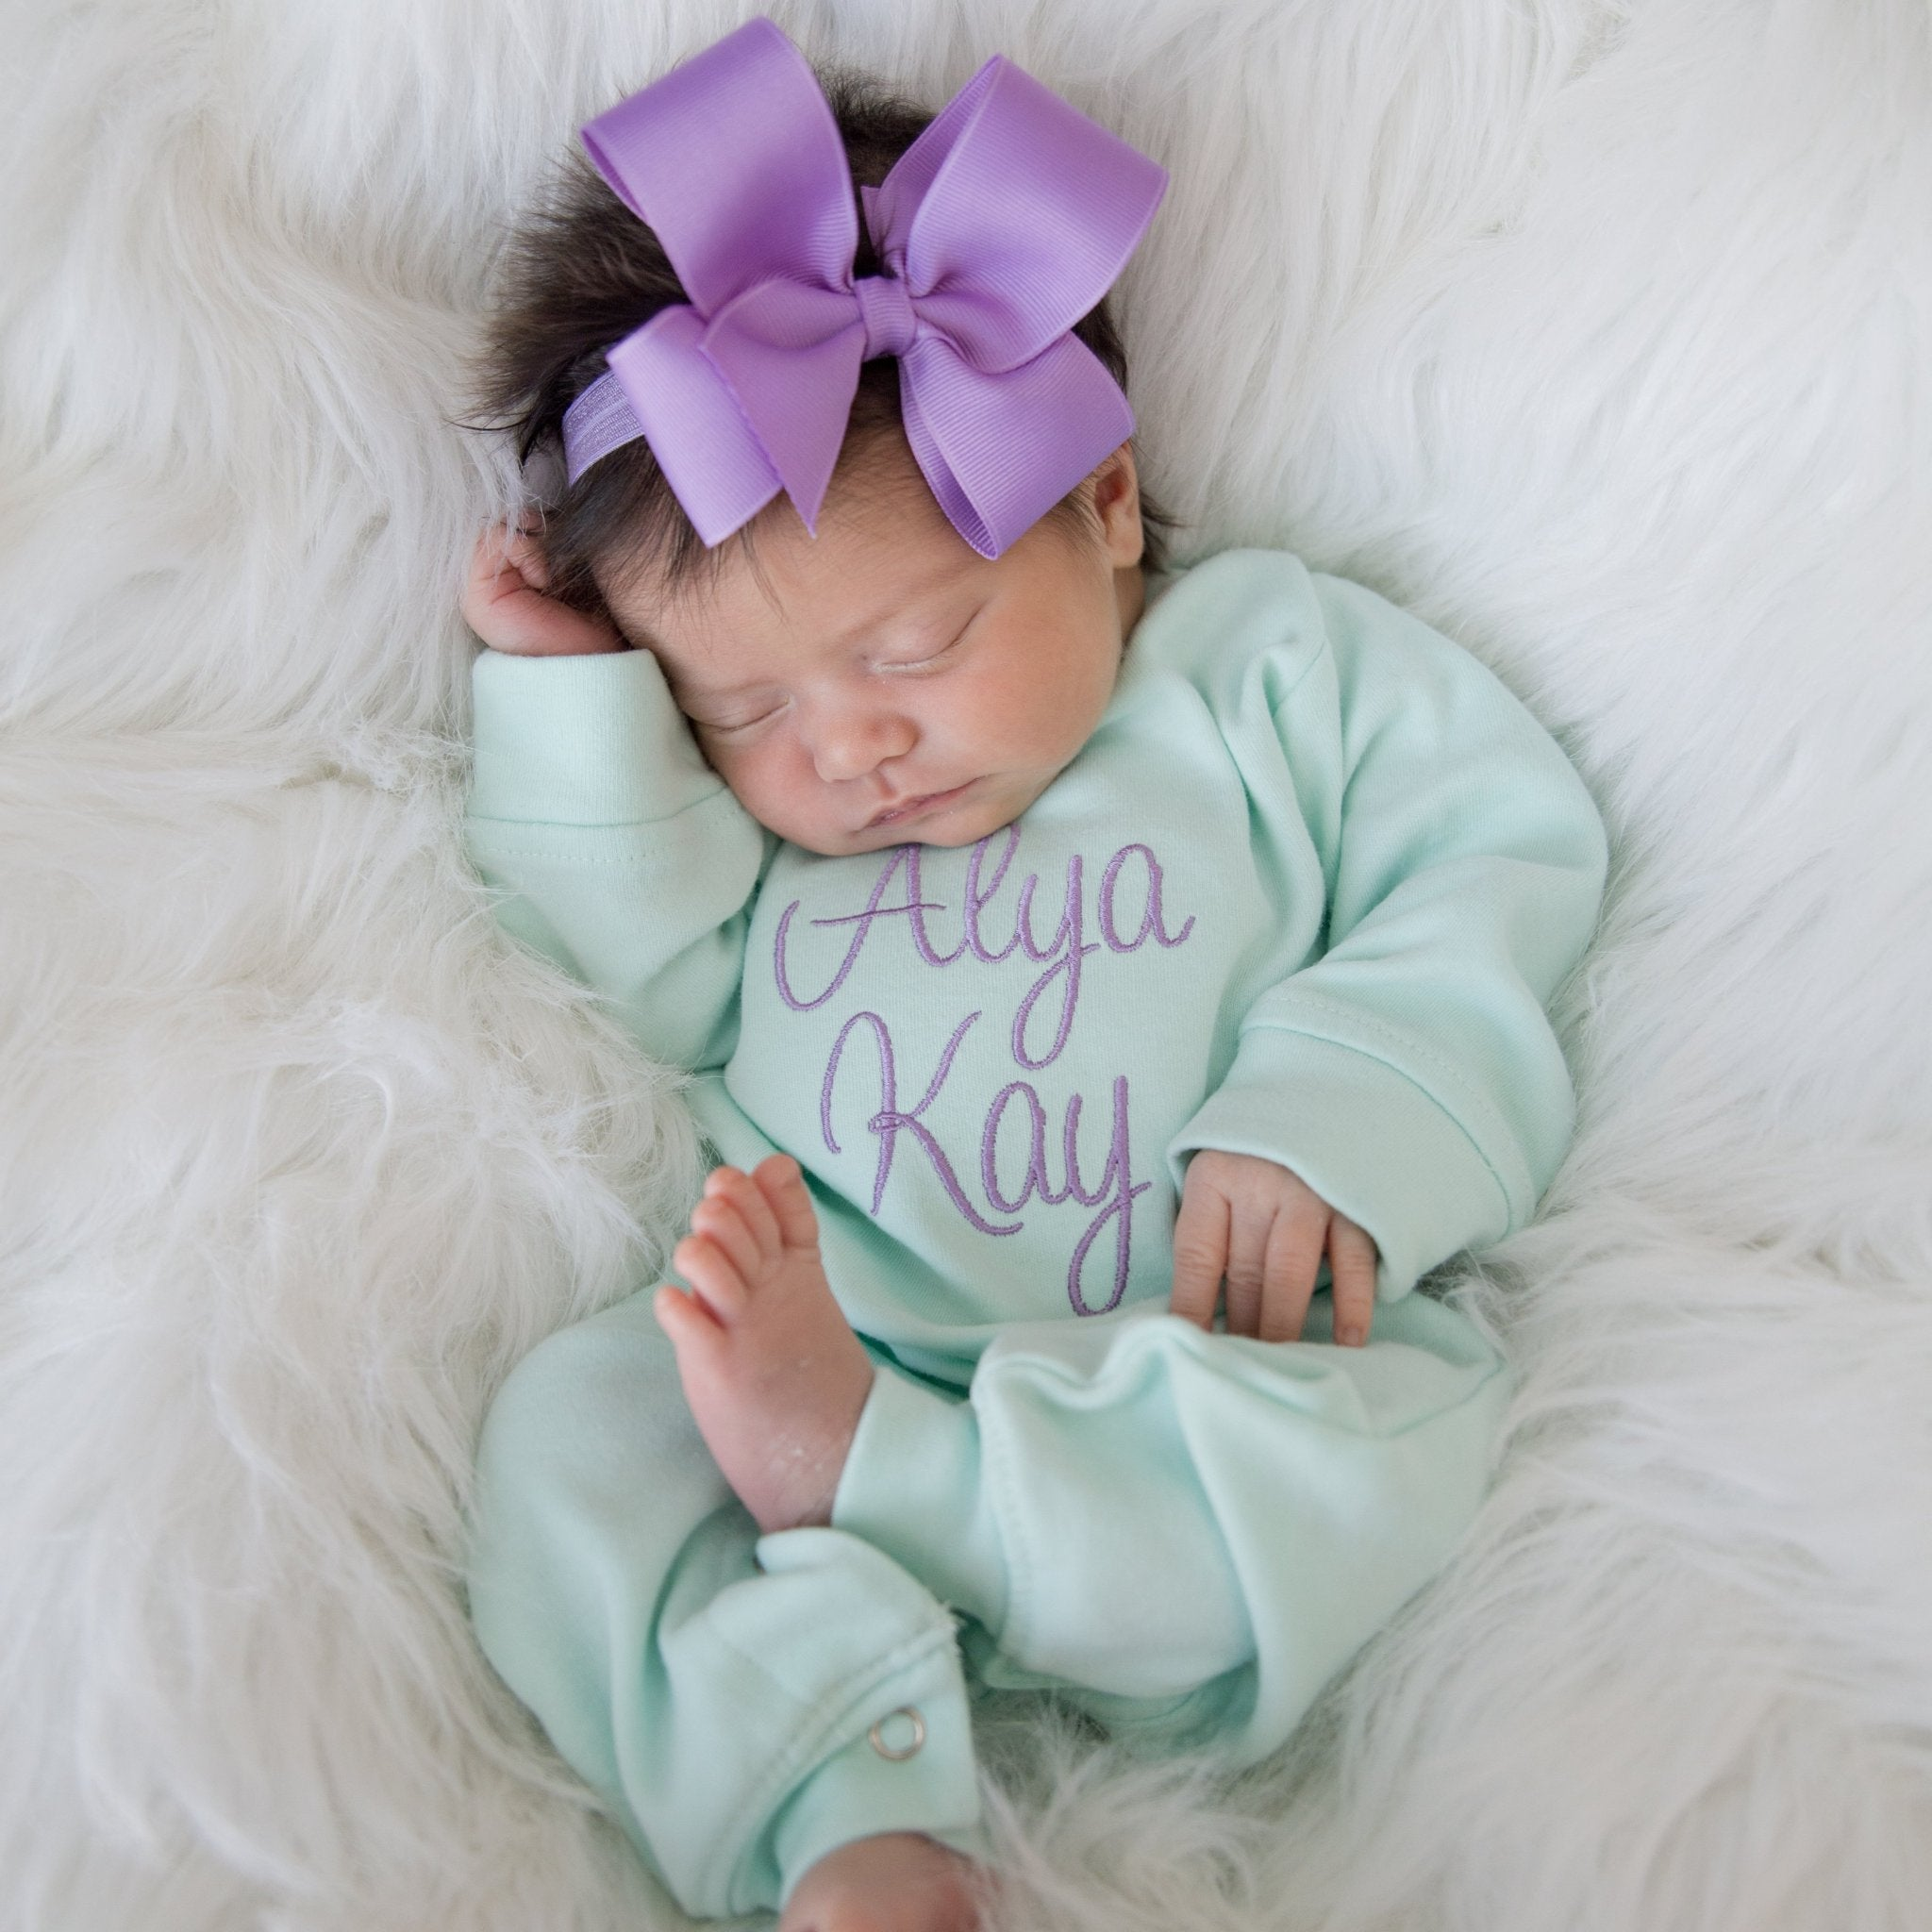 bd4be9b159a Mint and Lilac Newborn Baby Girl Coming Home Outfit with Bow Headband